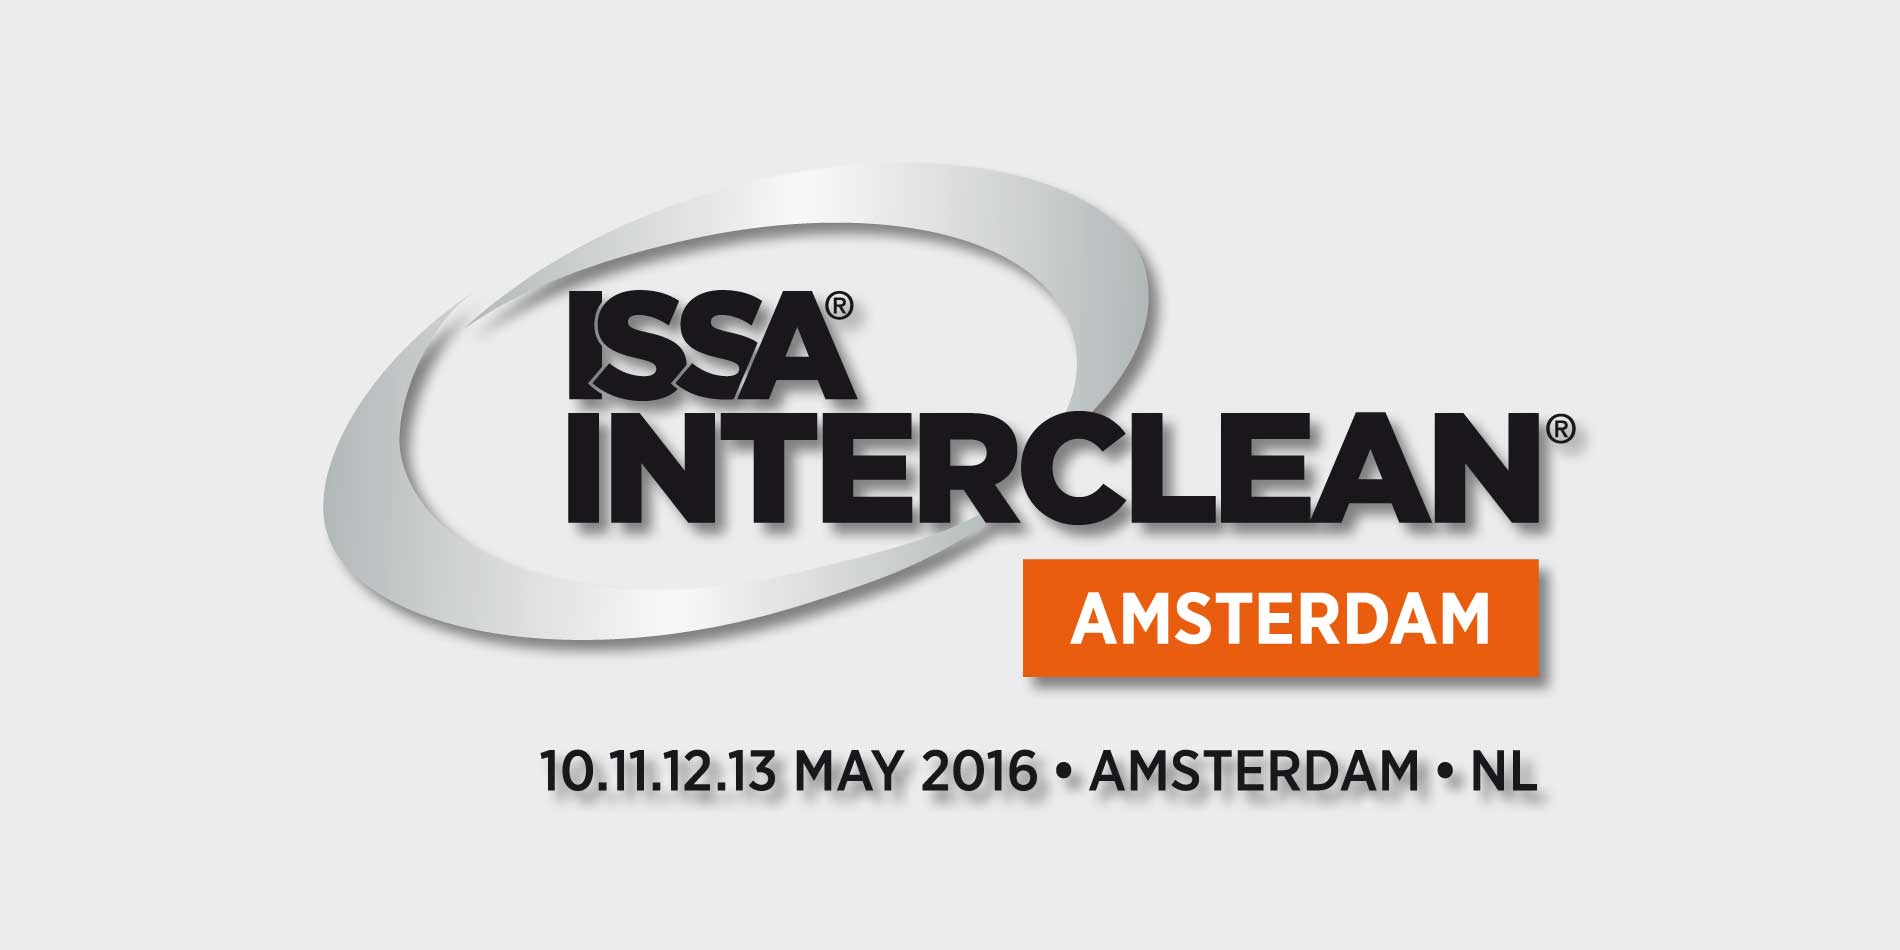 Messebanner der ISSA INTERCLEAN in Amsterdam